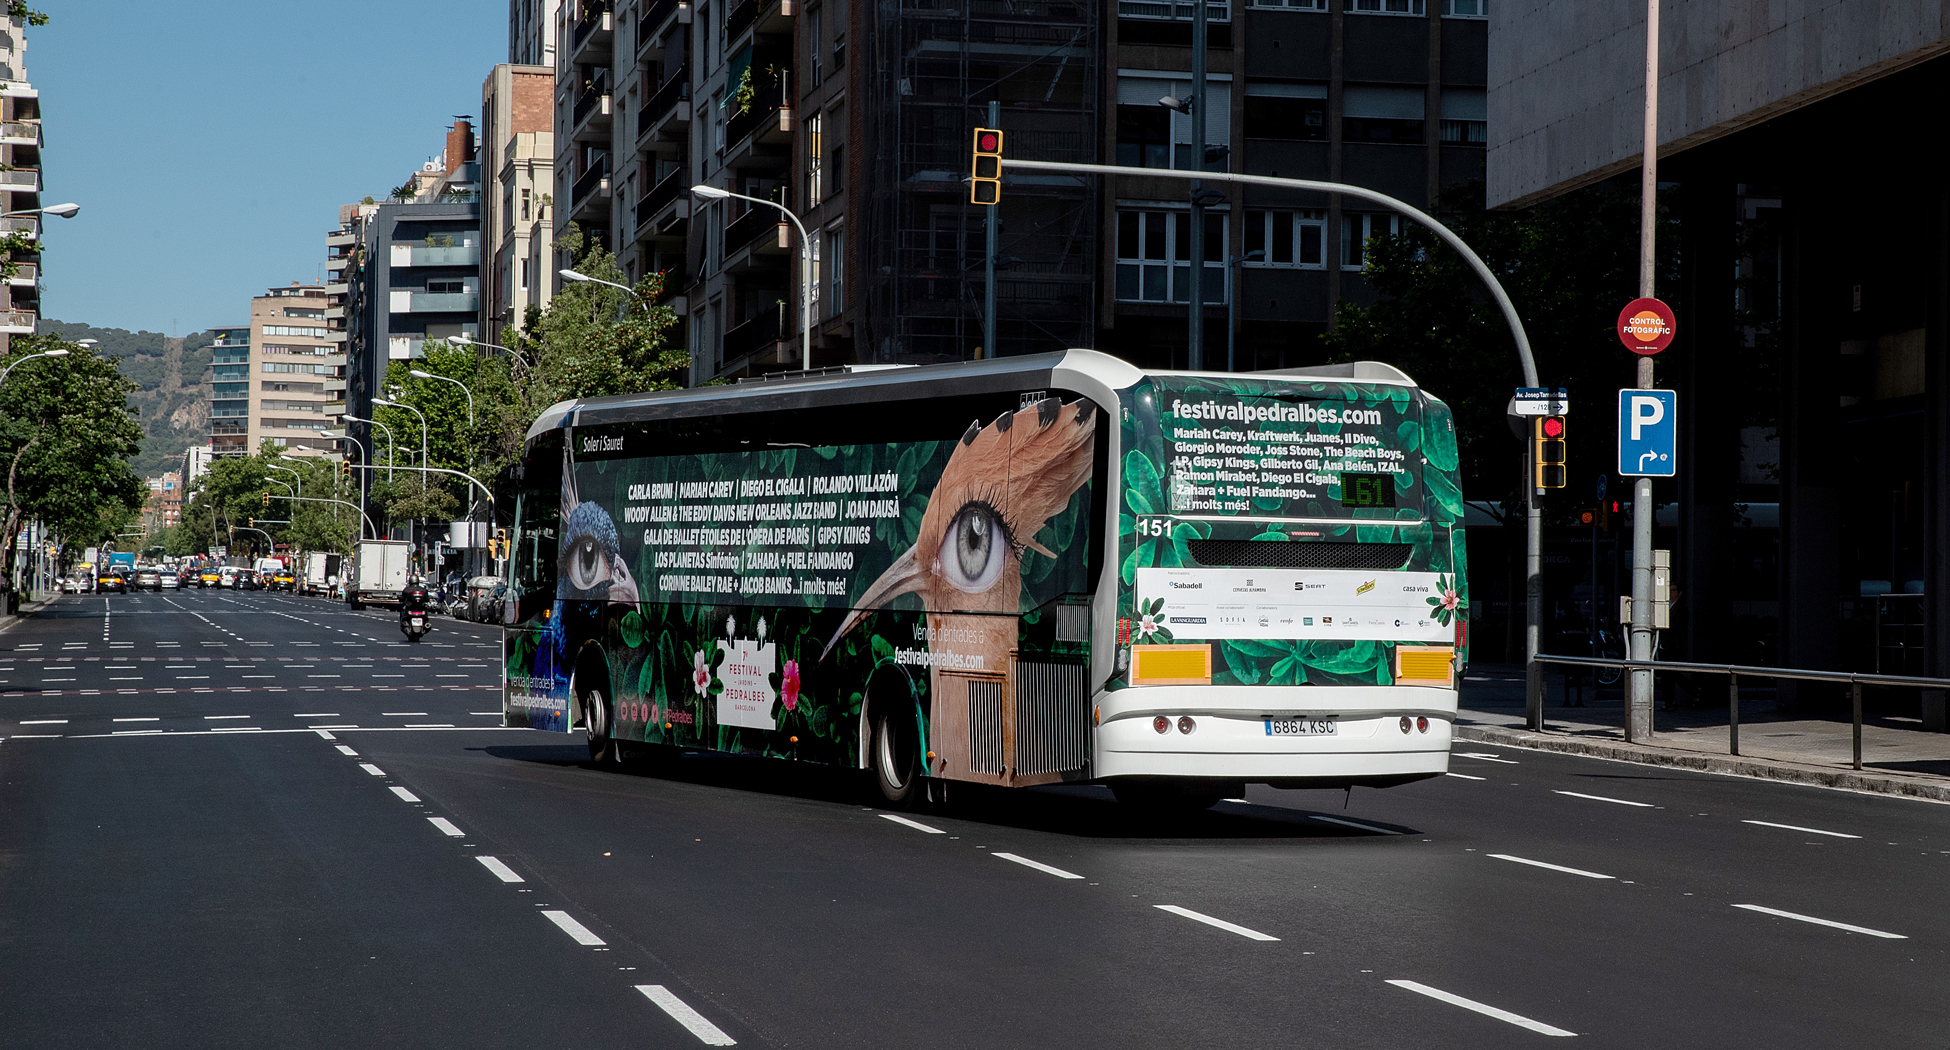 Bus_interurbano_02